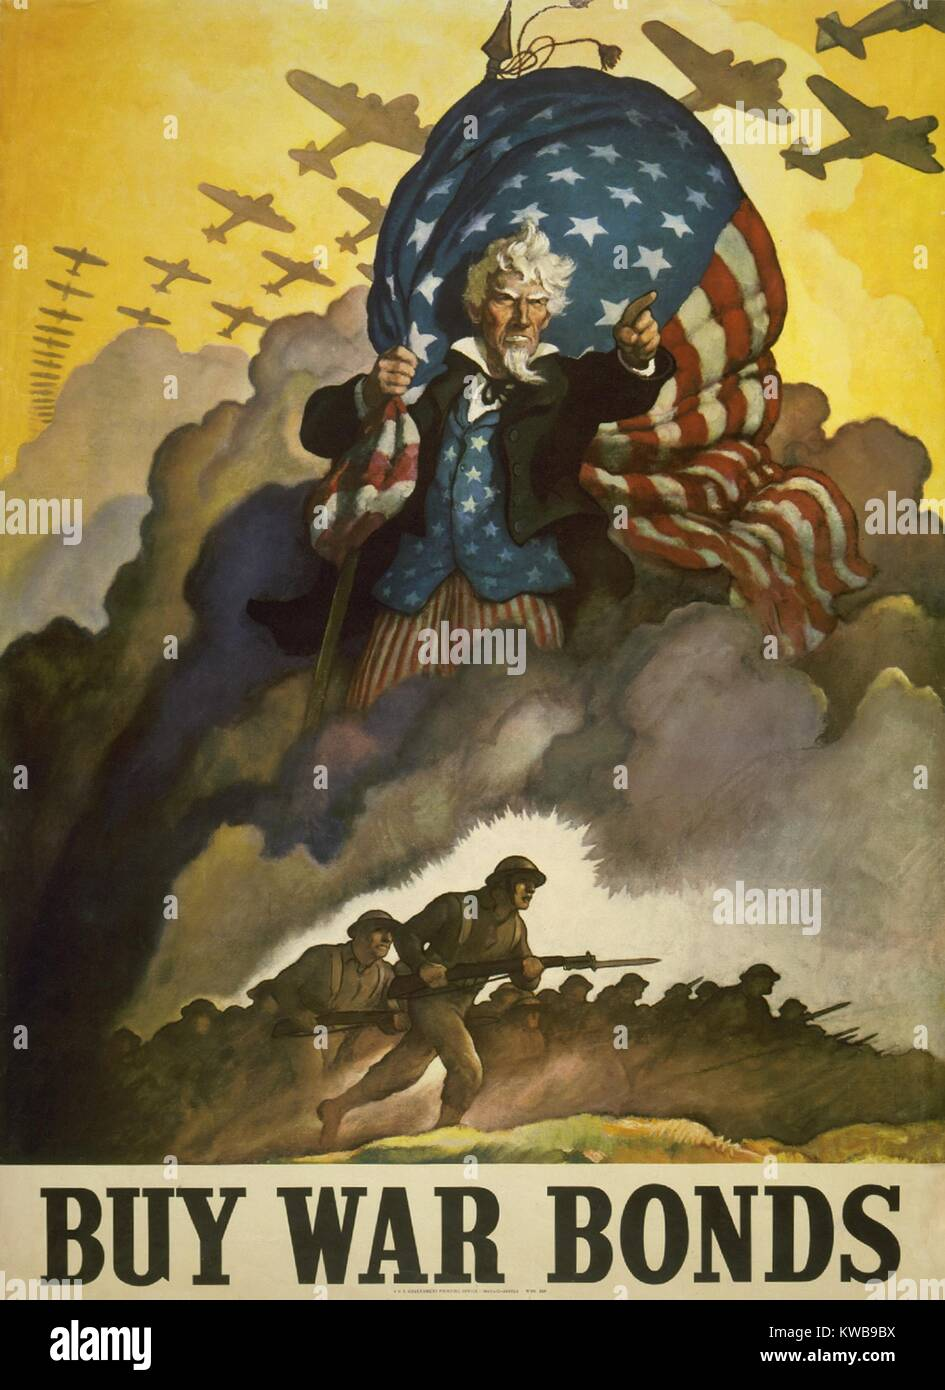 'Buy War Bonds.' World War 2 poster of Uncle Sam. He holds a U.S. flag and points his finger as fighting - Stock Image